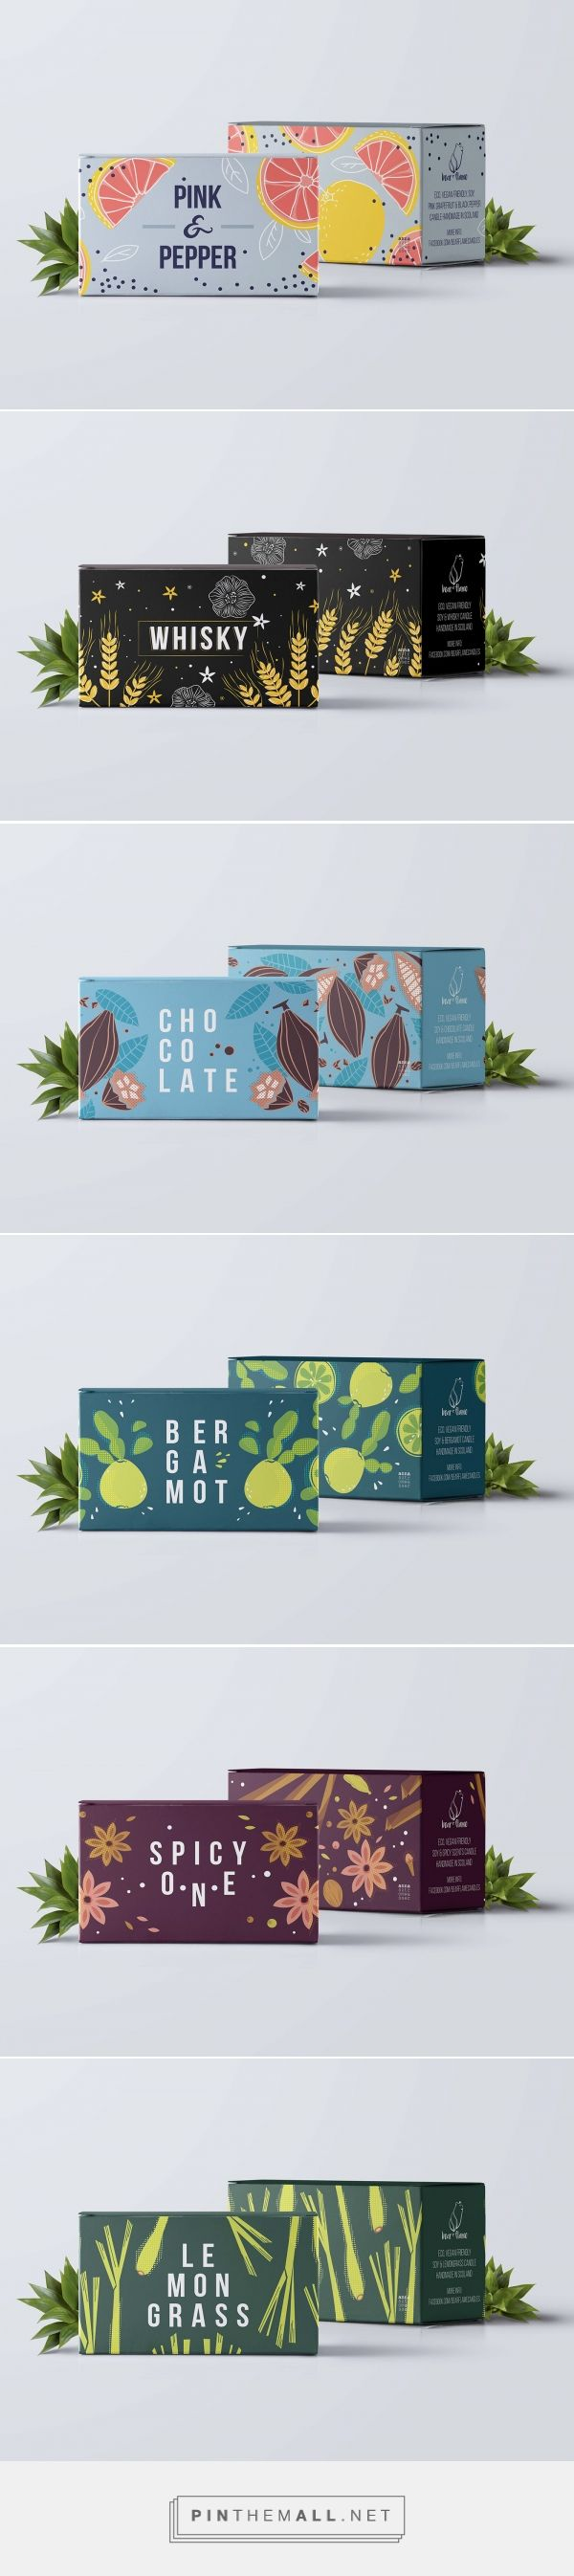 #pack #packing #idea #creation #tea #box #flat #design #illustration #crea #inspiration